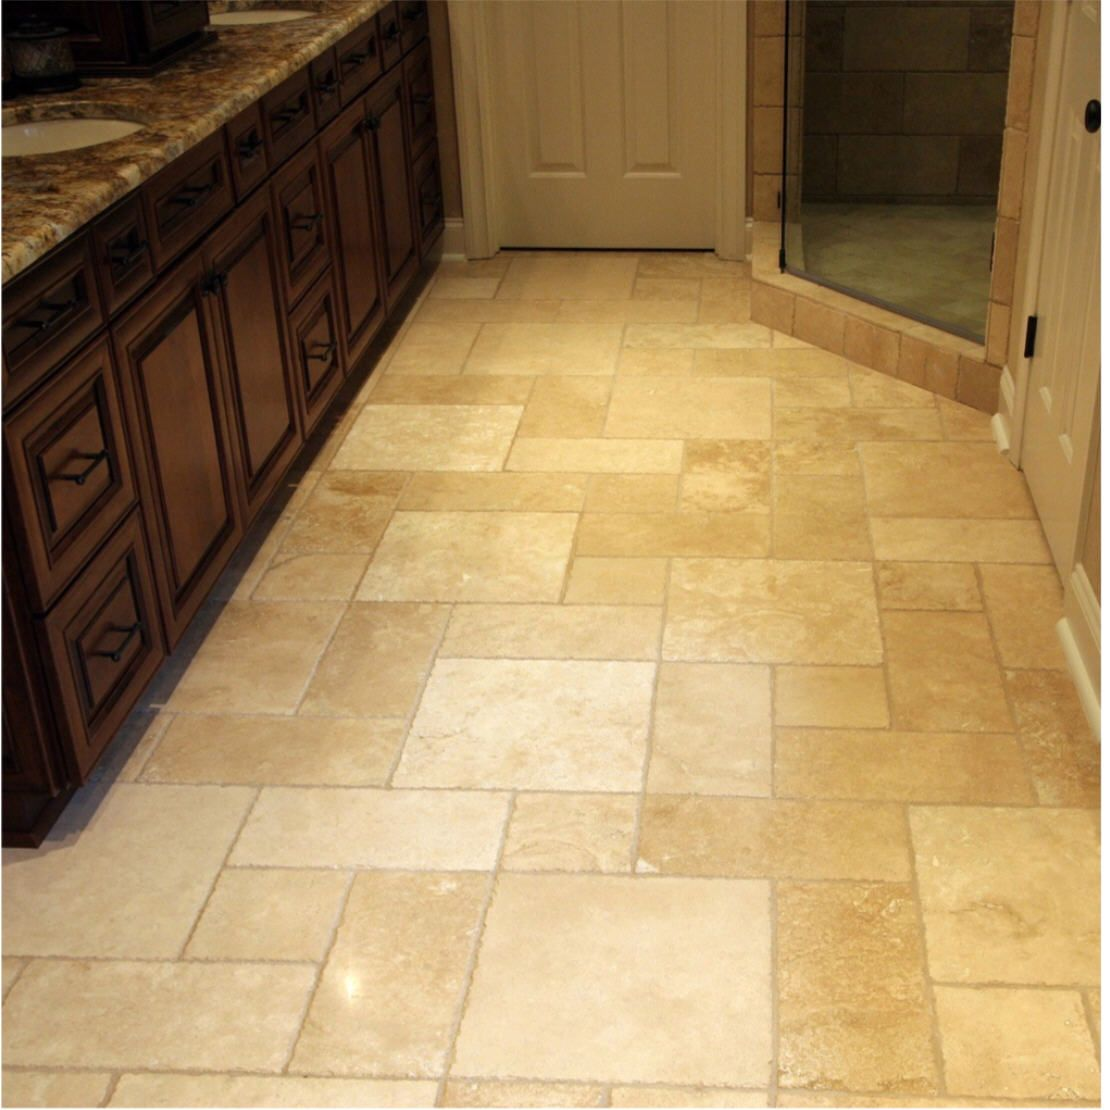 Travertine tile floor pattern called hopscotch affordable design travertine tile floor pattern called hopscotch dailygadgetfo Image collections